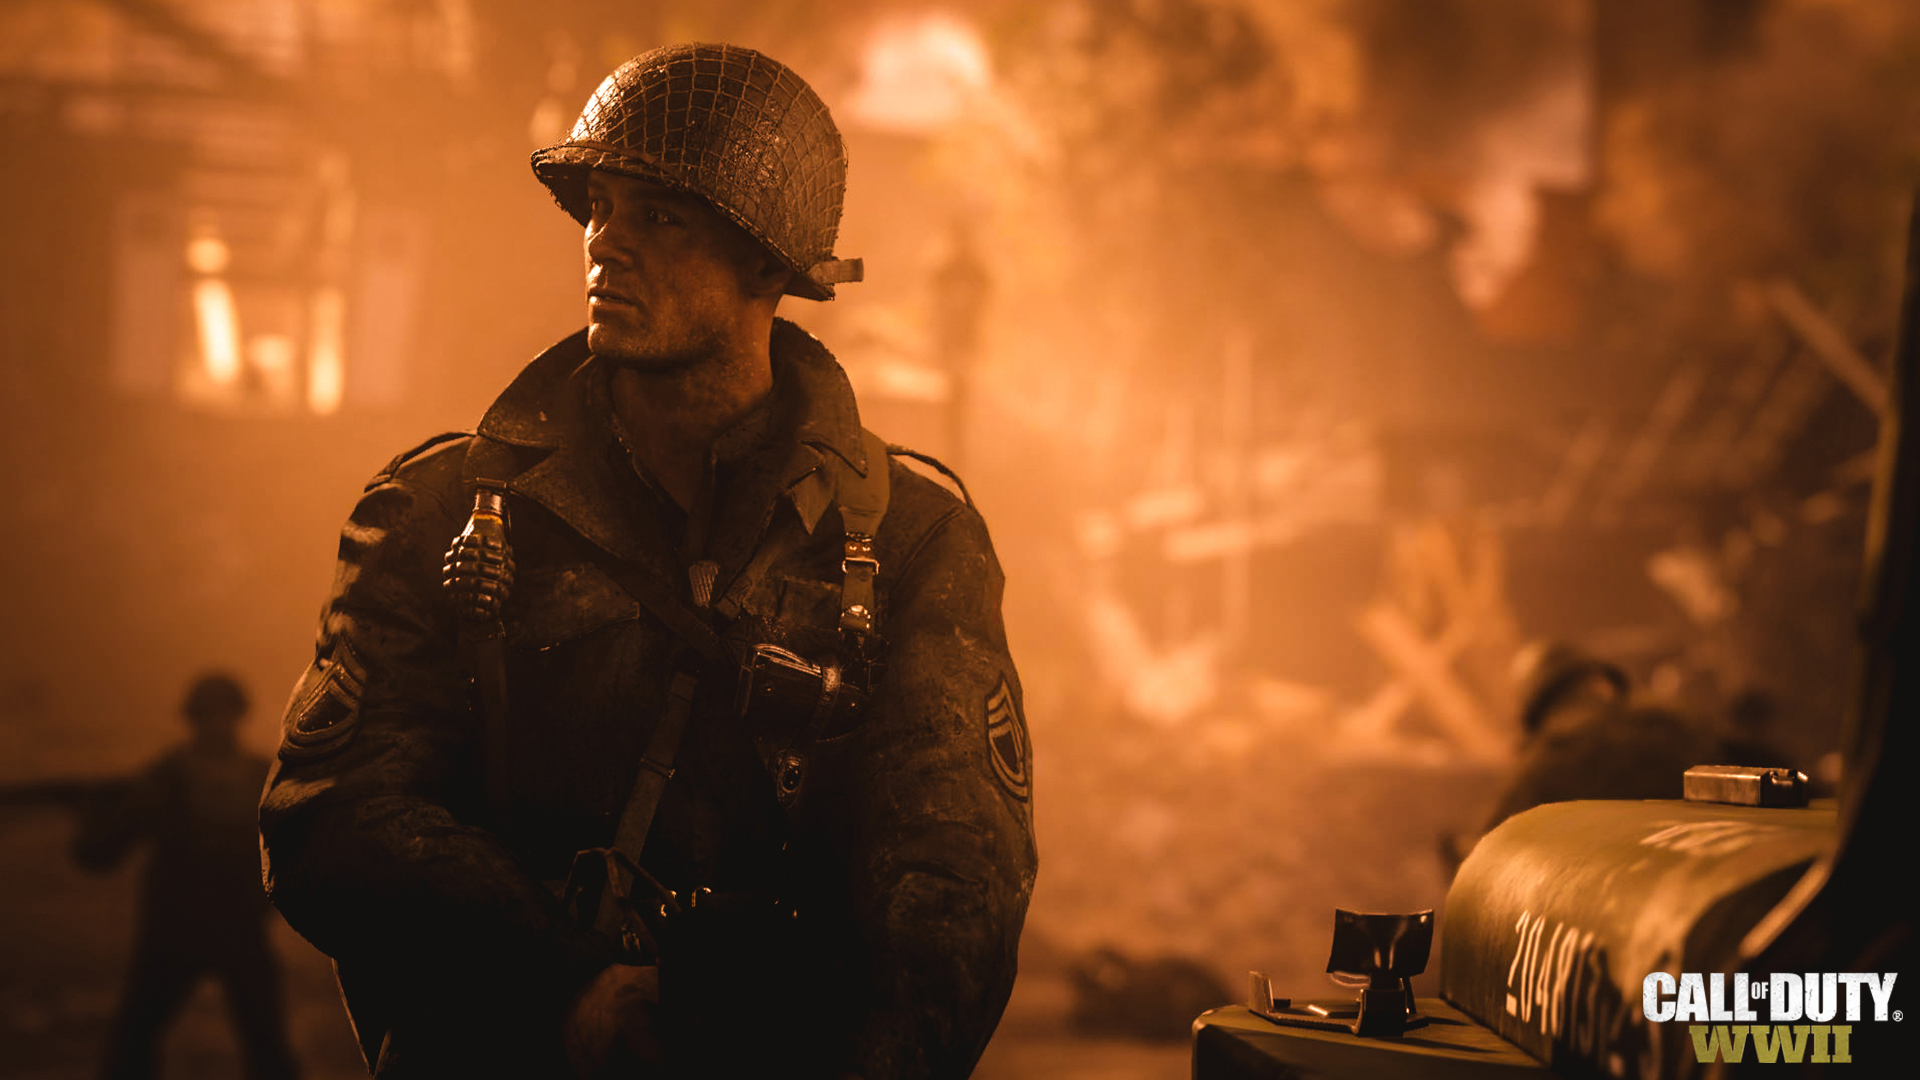 Call of Duty: WWII beta open to Xfinity customers without pre-ordering the game